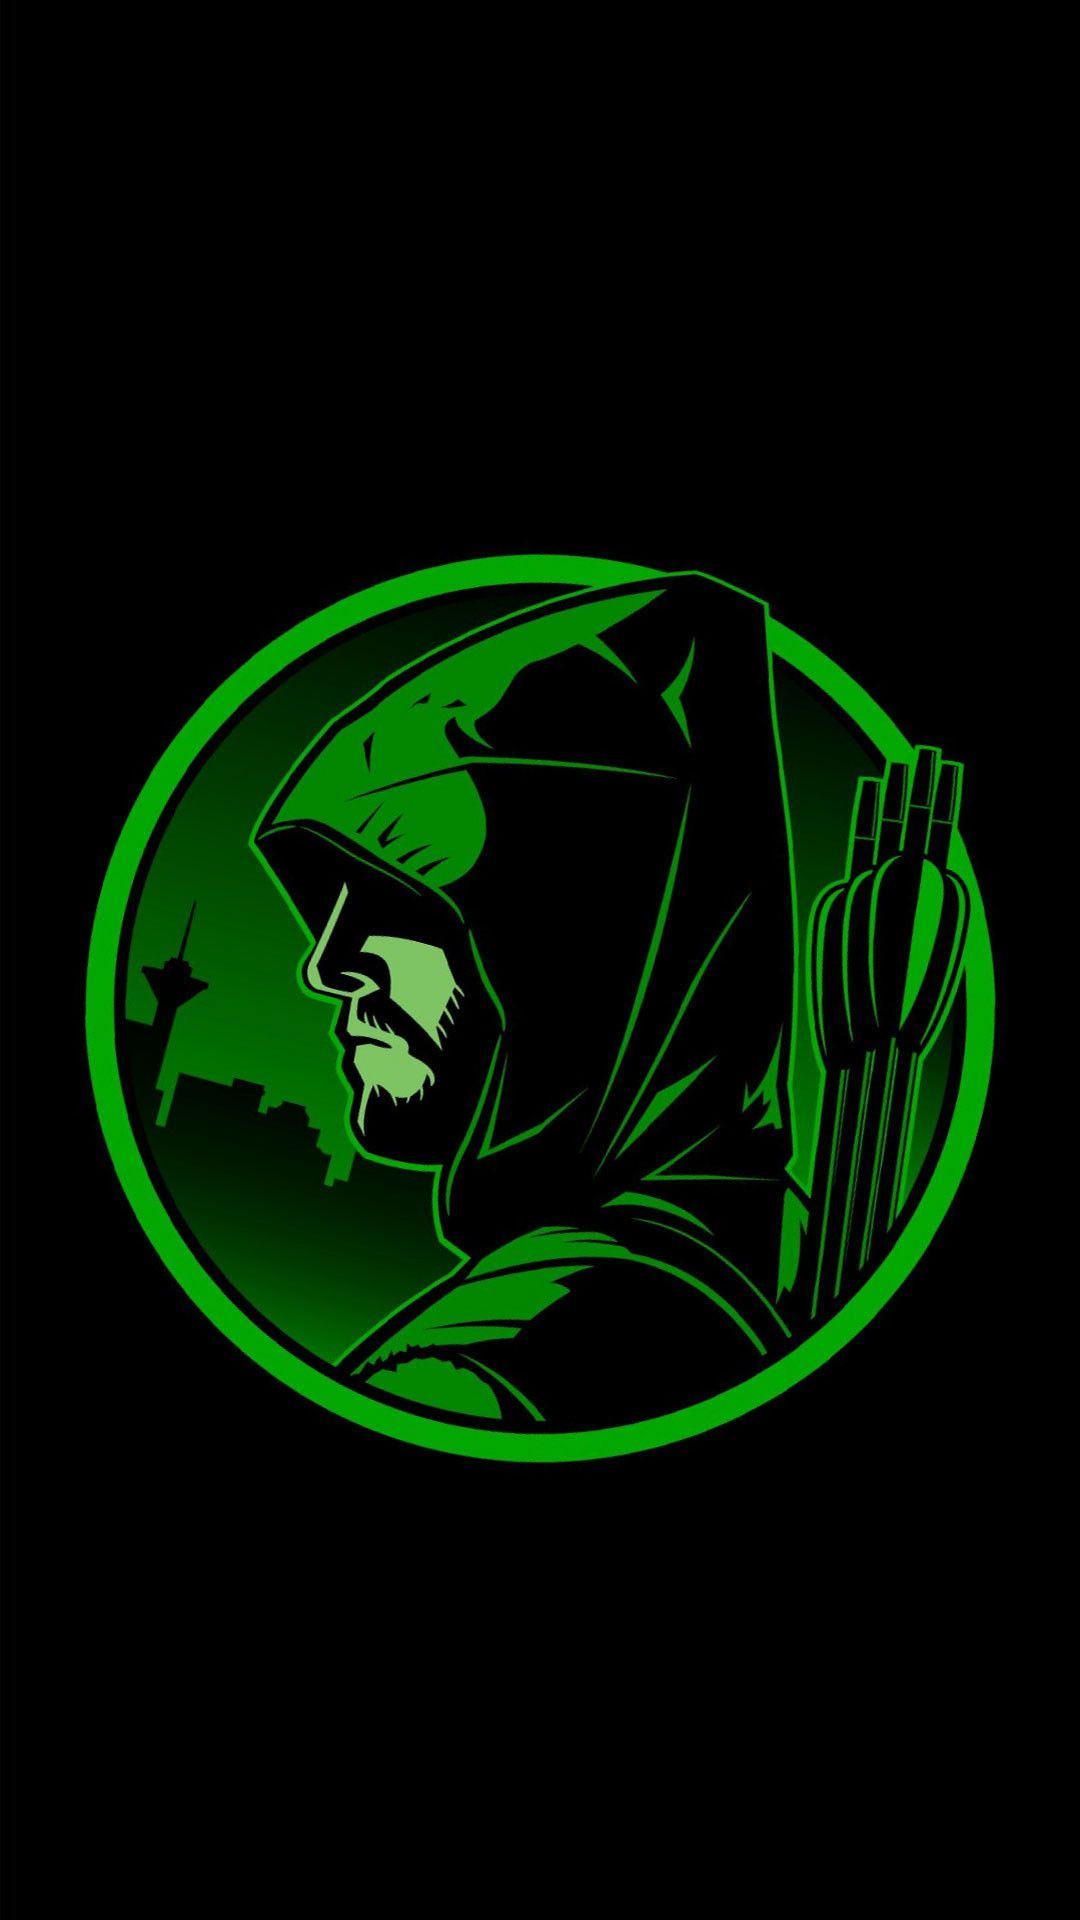 Arrow Hd Wallpaper For Android 1080x1920 Green Arrow Arrow Superhero Wallpaper Green android image hd wallpaper